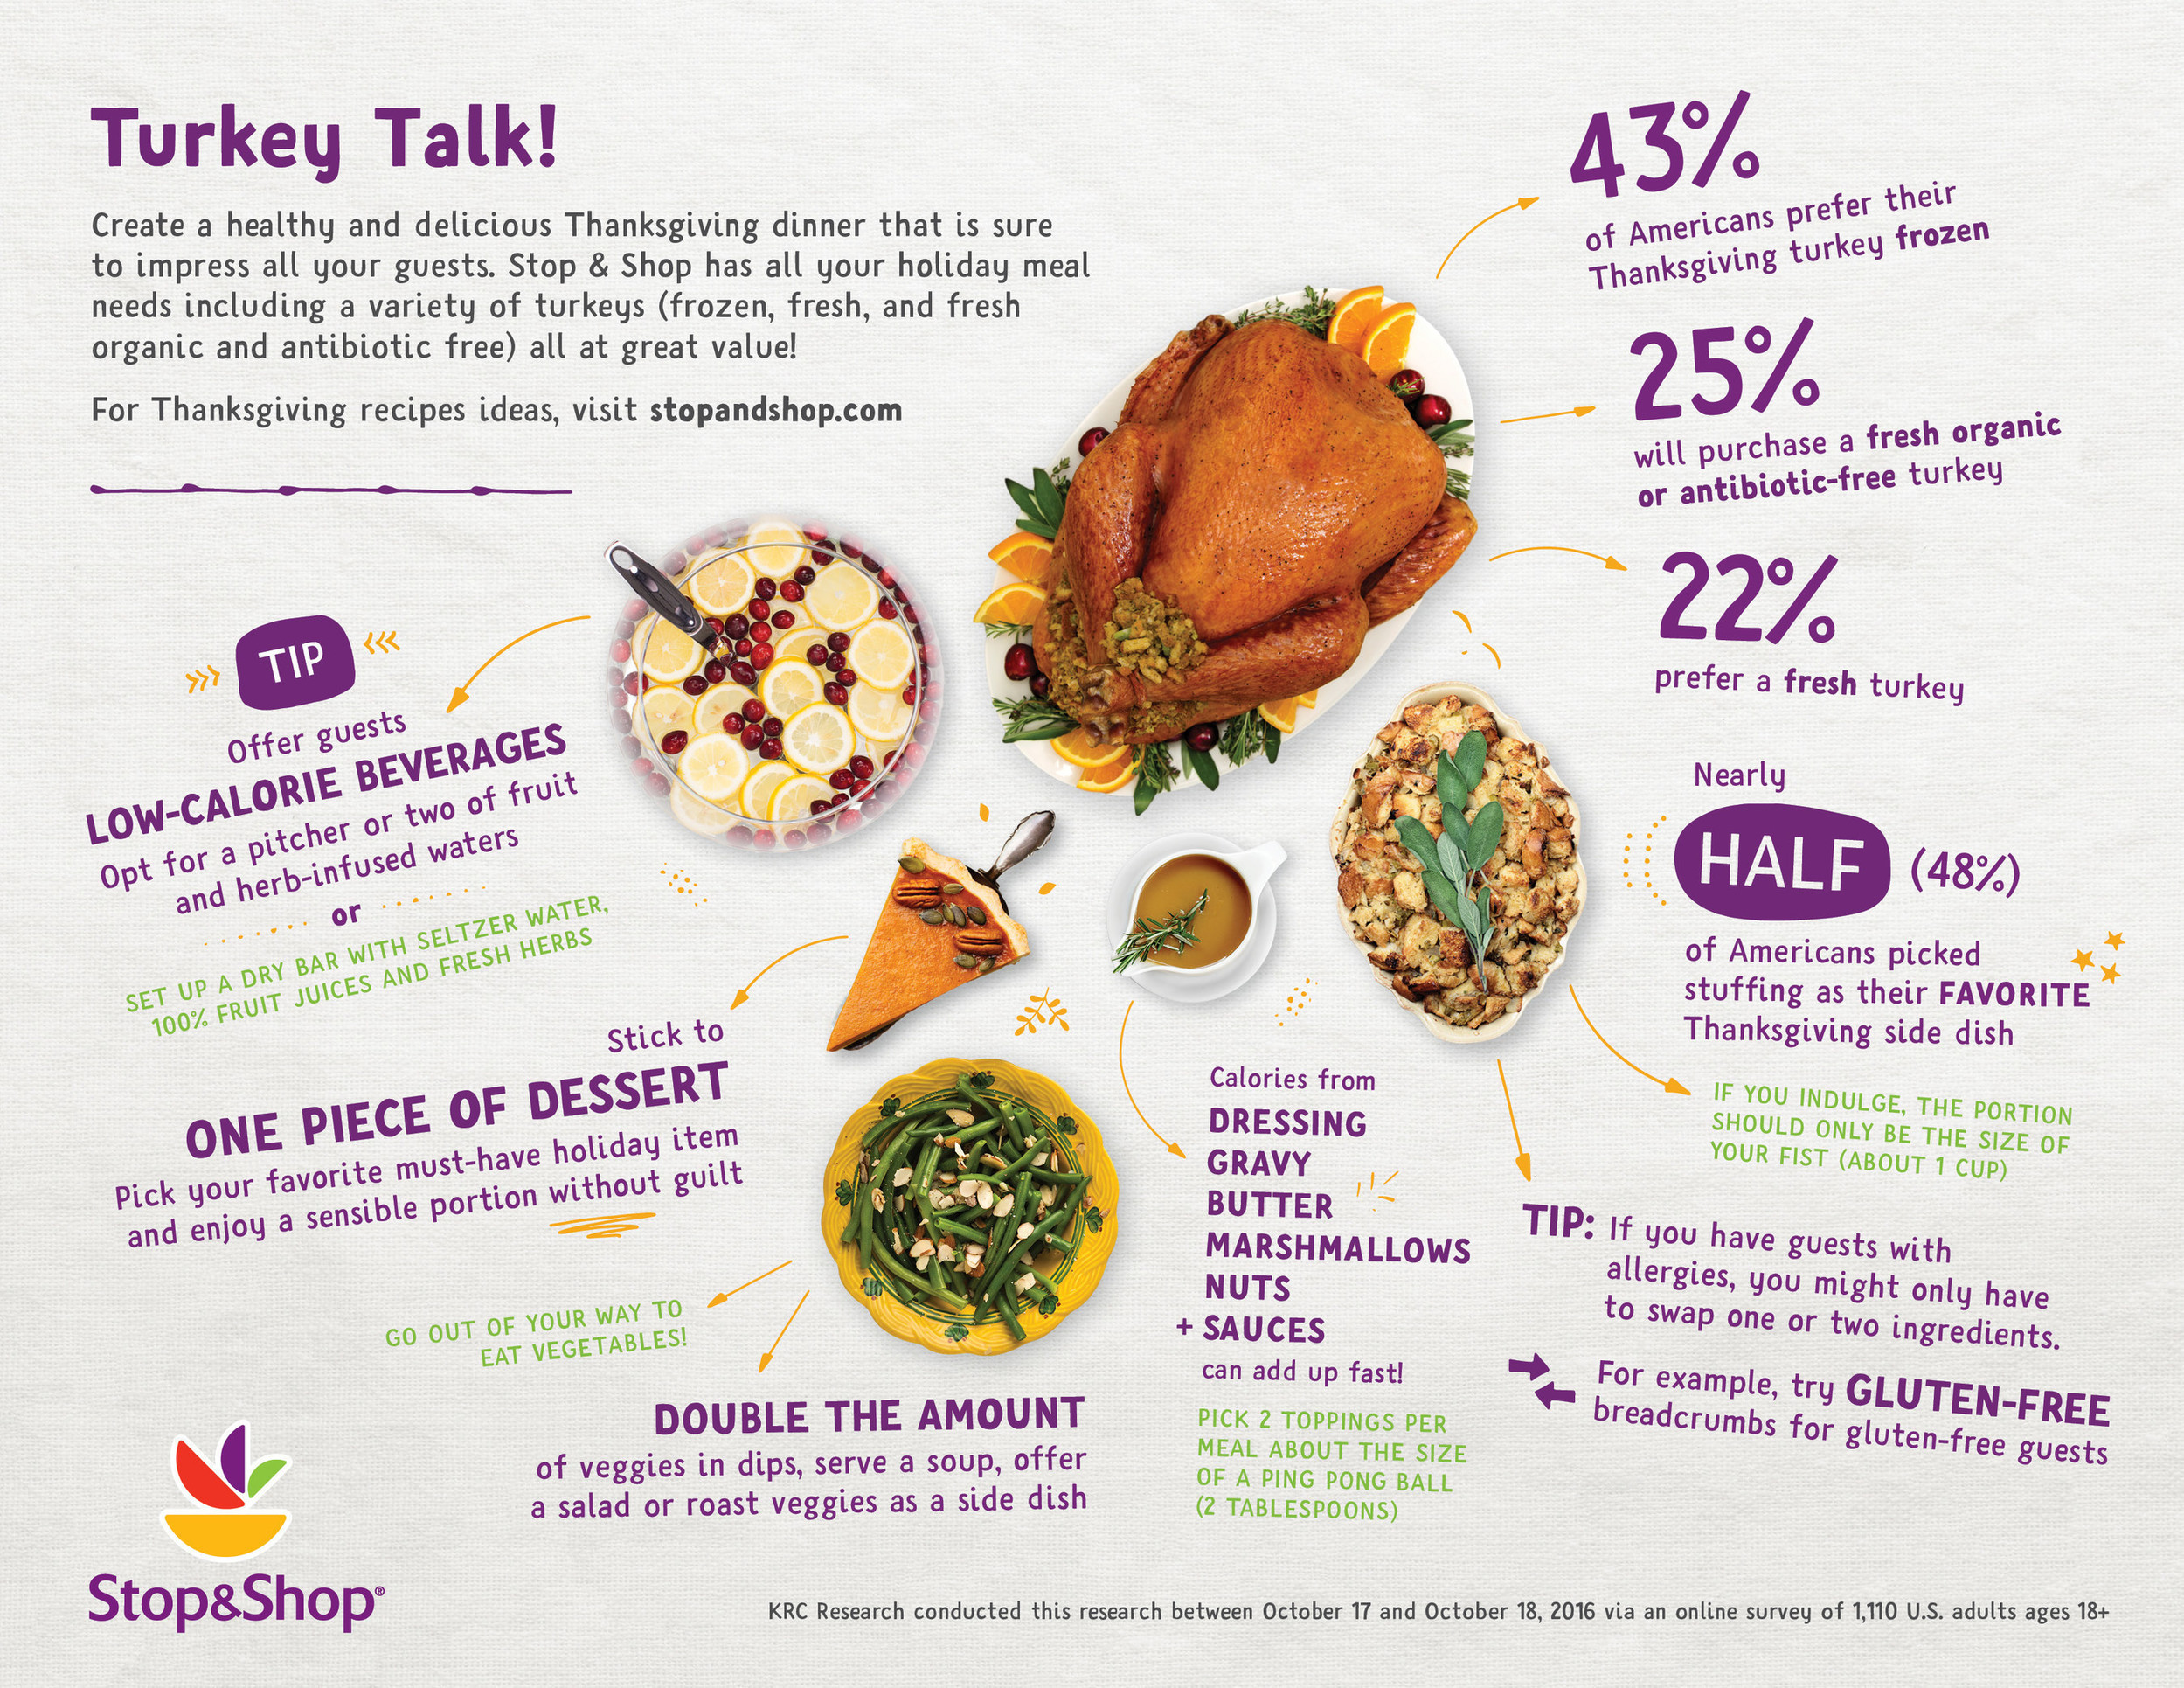 Stop Shop Commissioned Krc Research To Poll Americans About Their Thanksgiving Dinner Preferences The